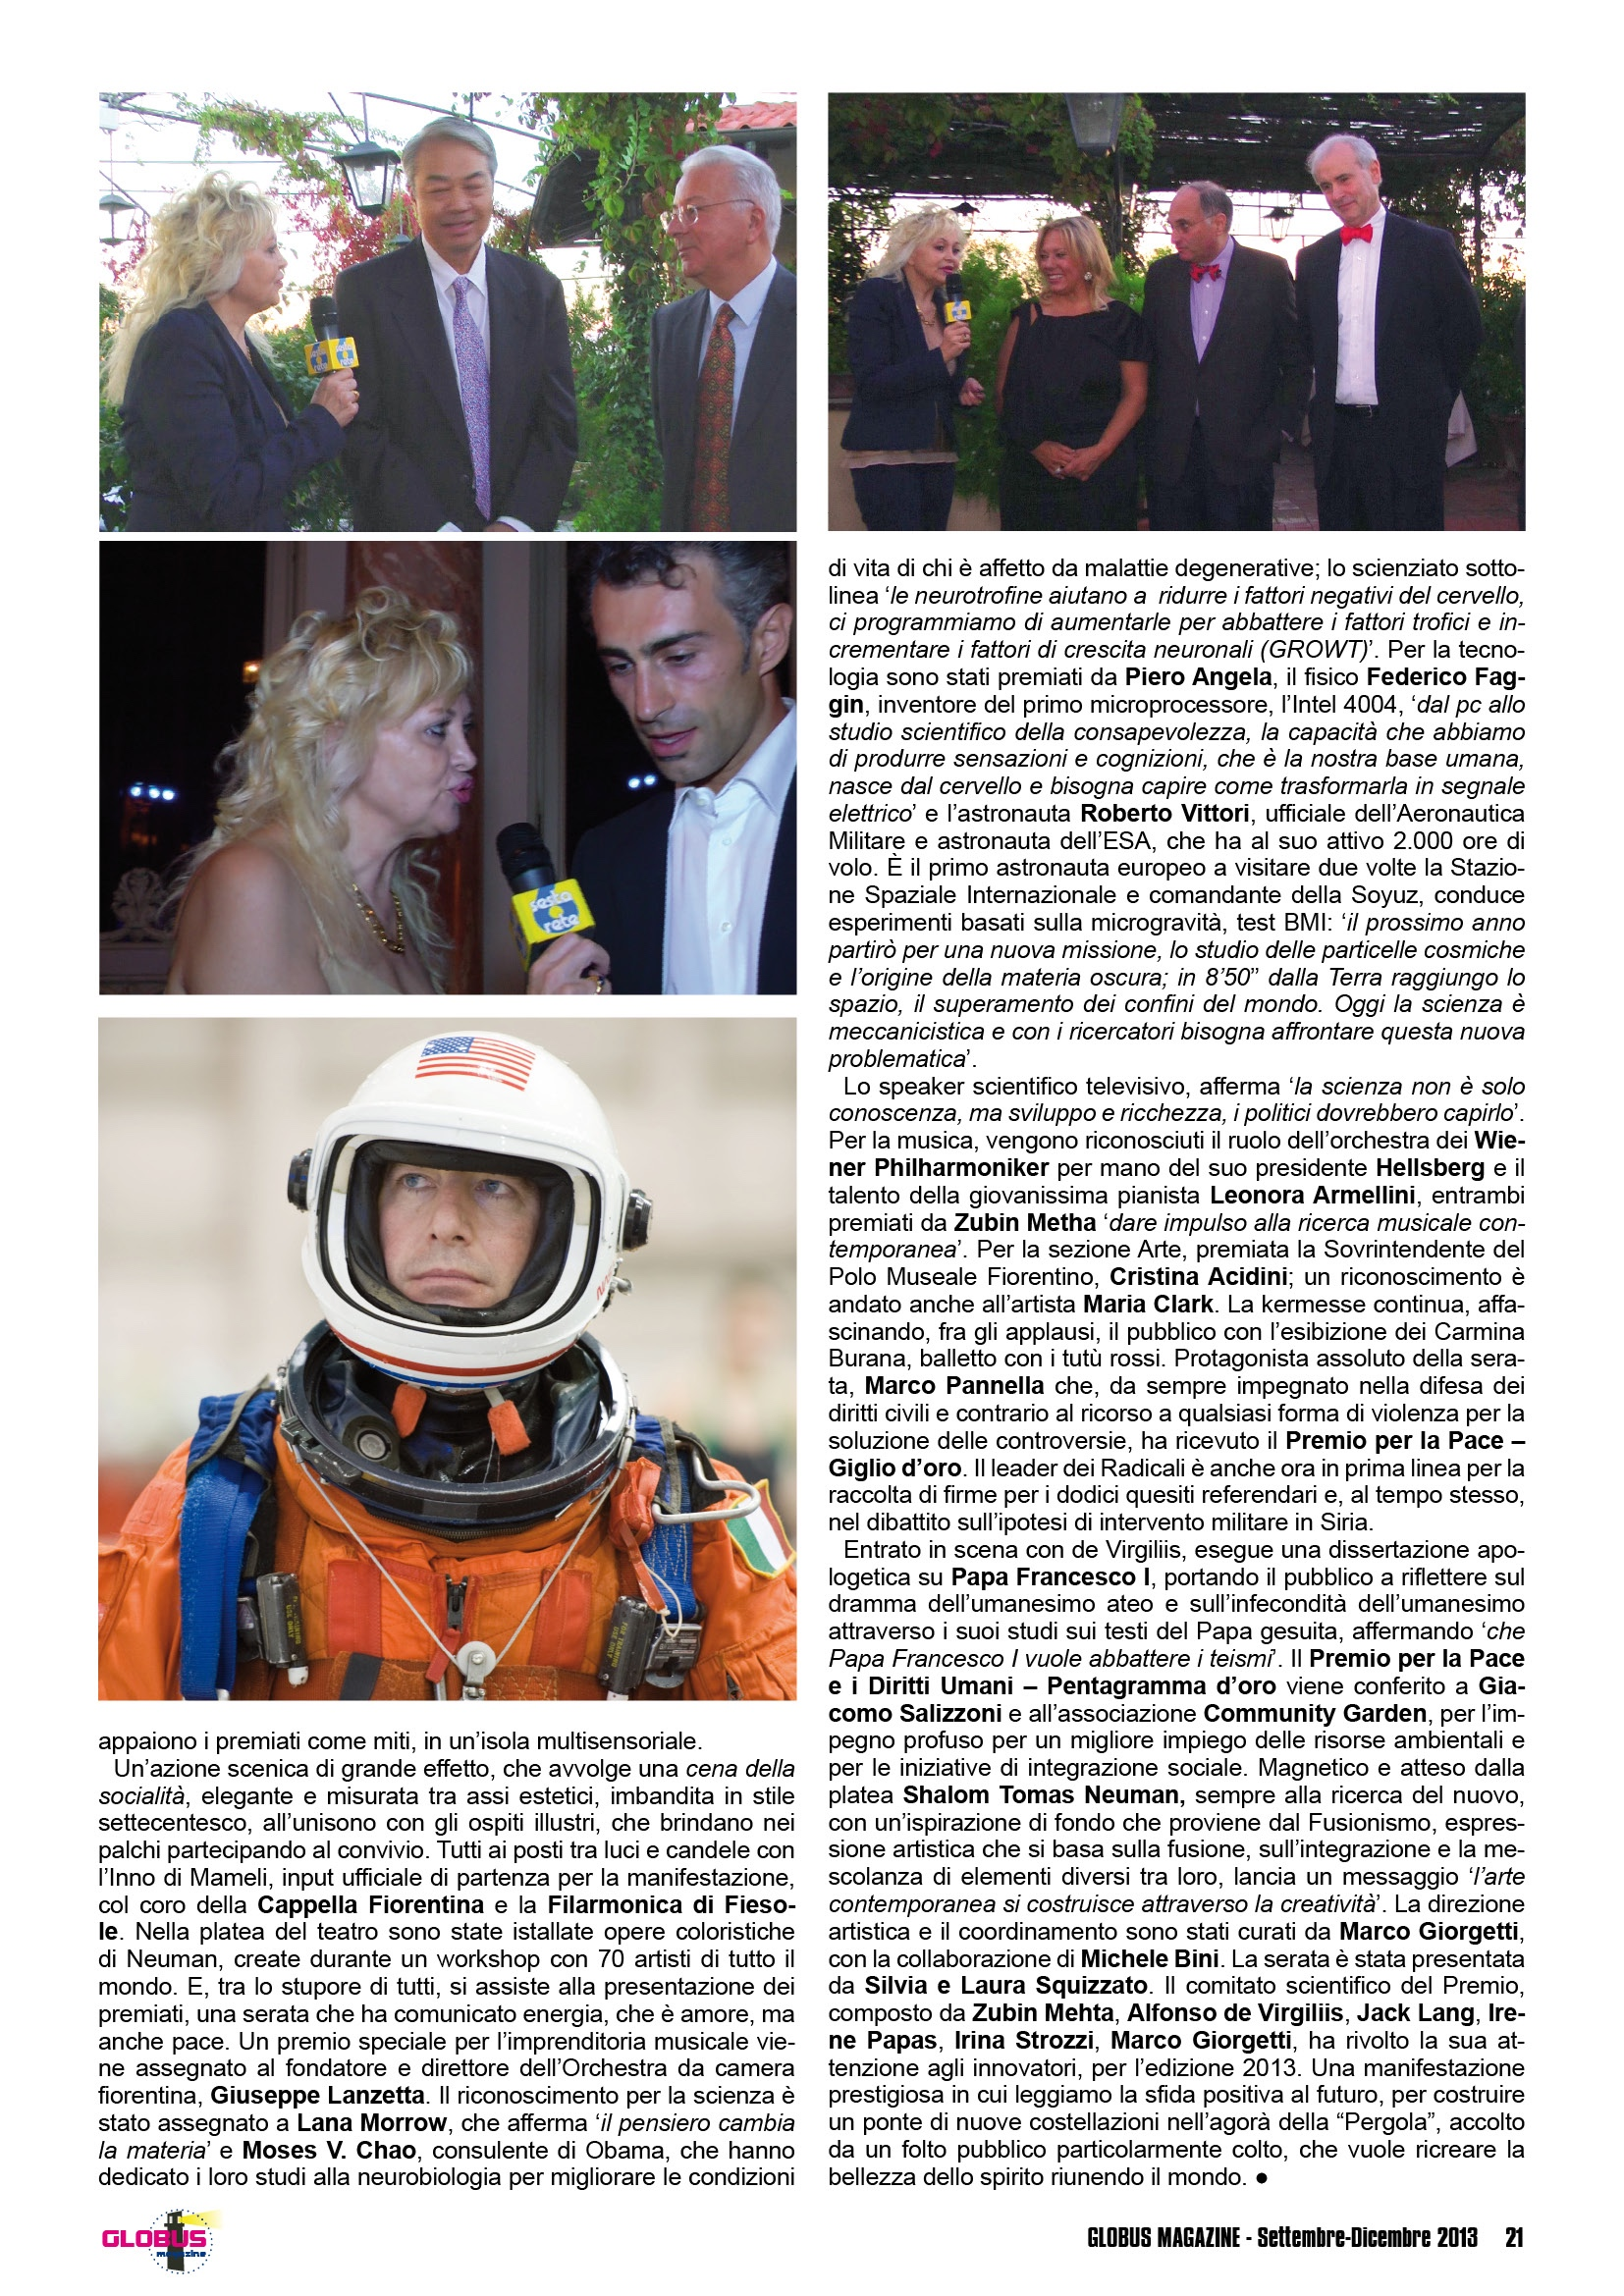 Dr. Lana Morrow and Dr. Moses Chao featured in Italian article on the Galileo2000 Award